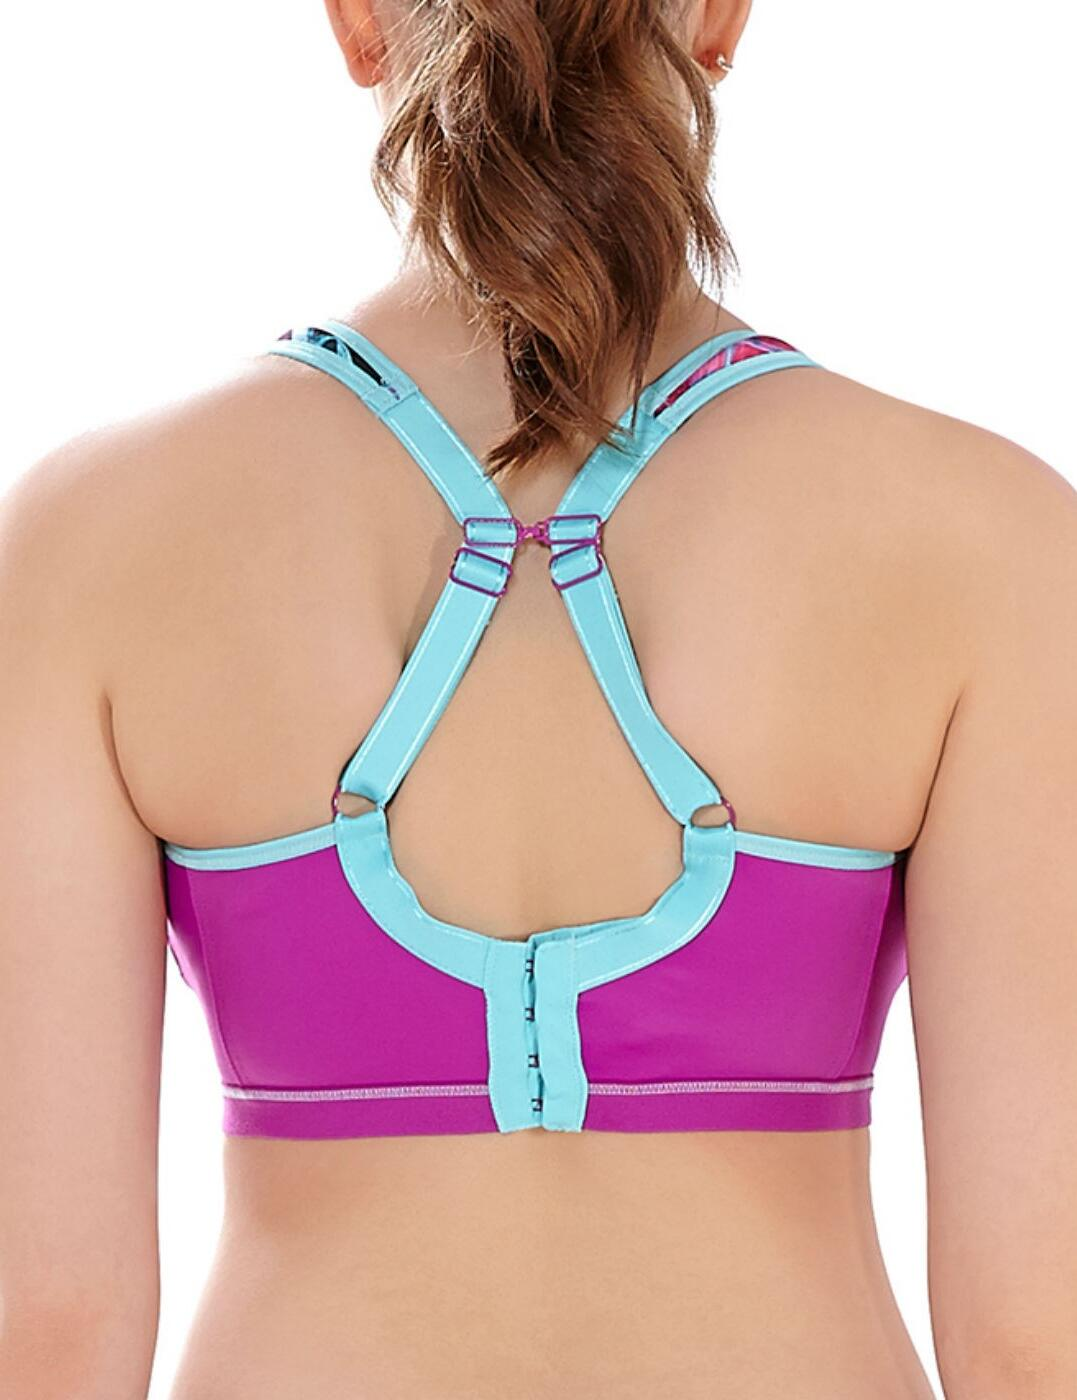 Freya-Active-Epic-Sports-Bra-4004-Underwired-Padded-Moulded-High-Impact-Gym-Bra thumbnail 20